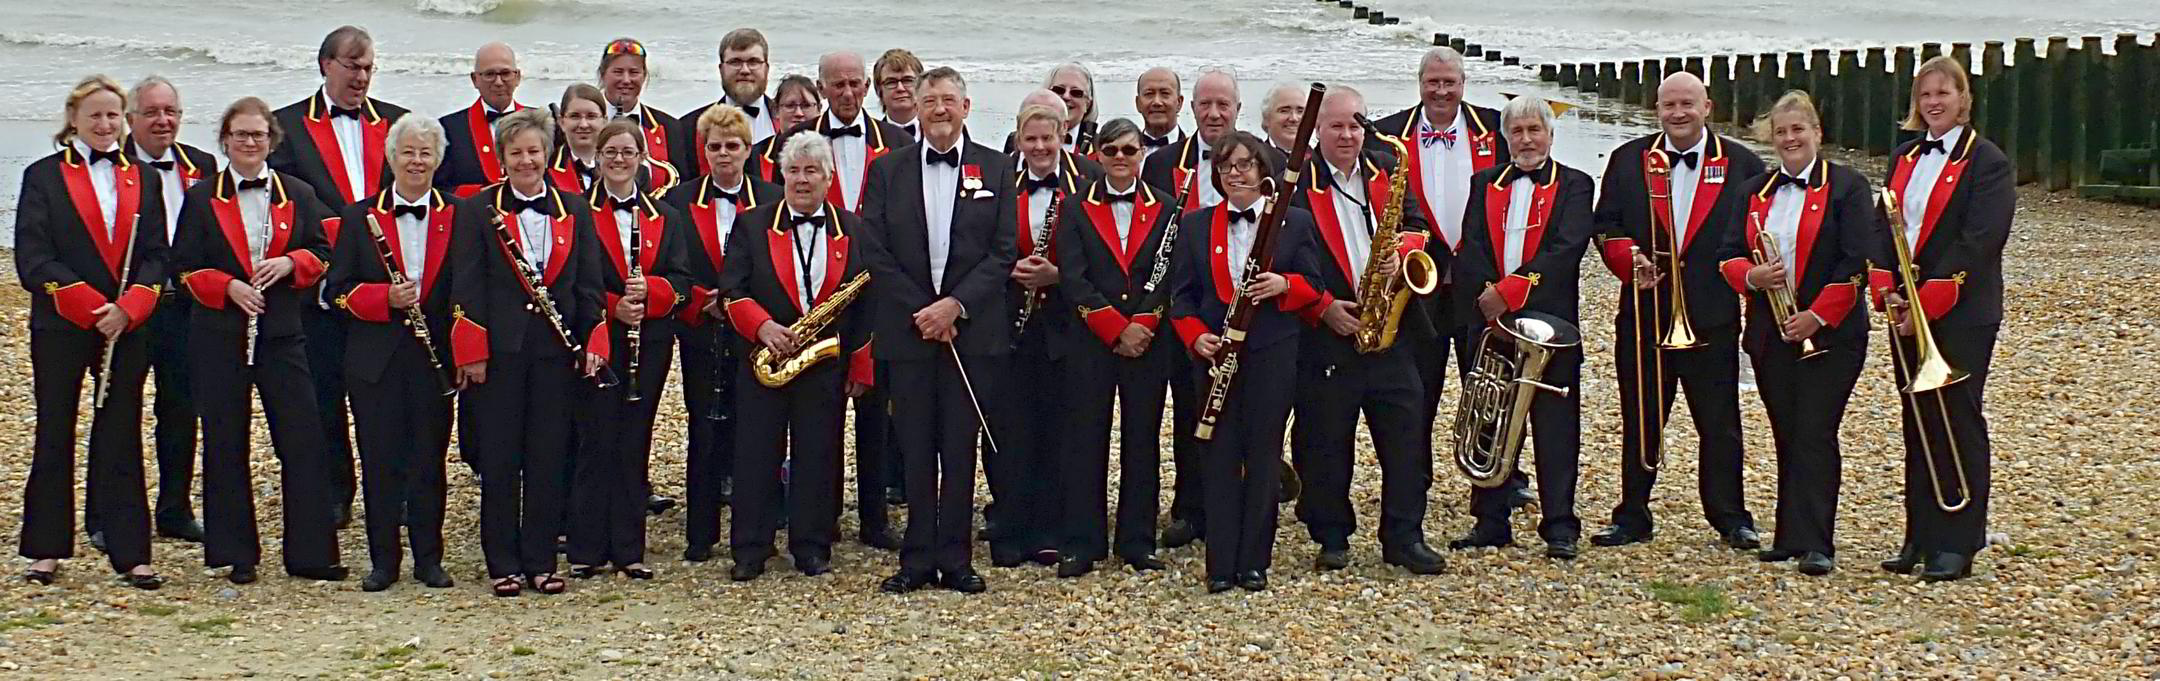 band-eastbourne2.jpg